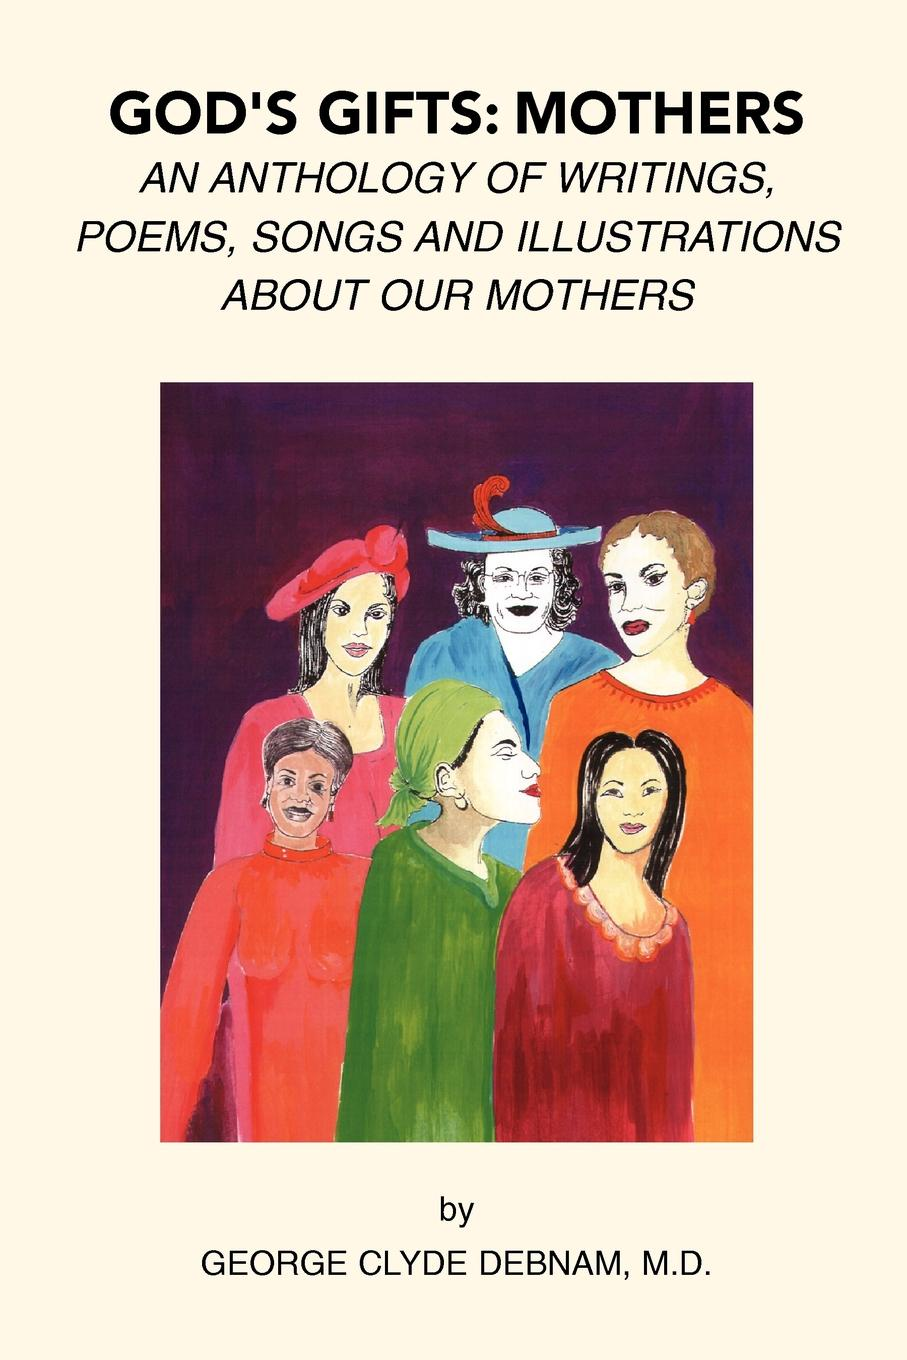 Dr. George Clyde M.D Debnam God's Gifts. Mothers: An Anthology of Writings, Poems, Songs and Illustrations About Our Mothers harole yoseph gebregziabhire understanding mothers perception about malnutrition